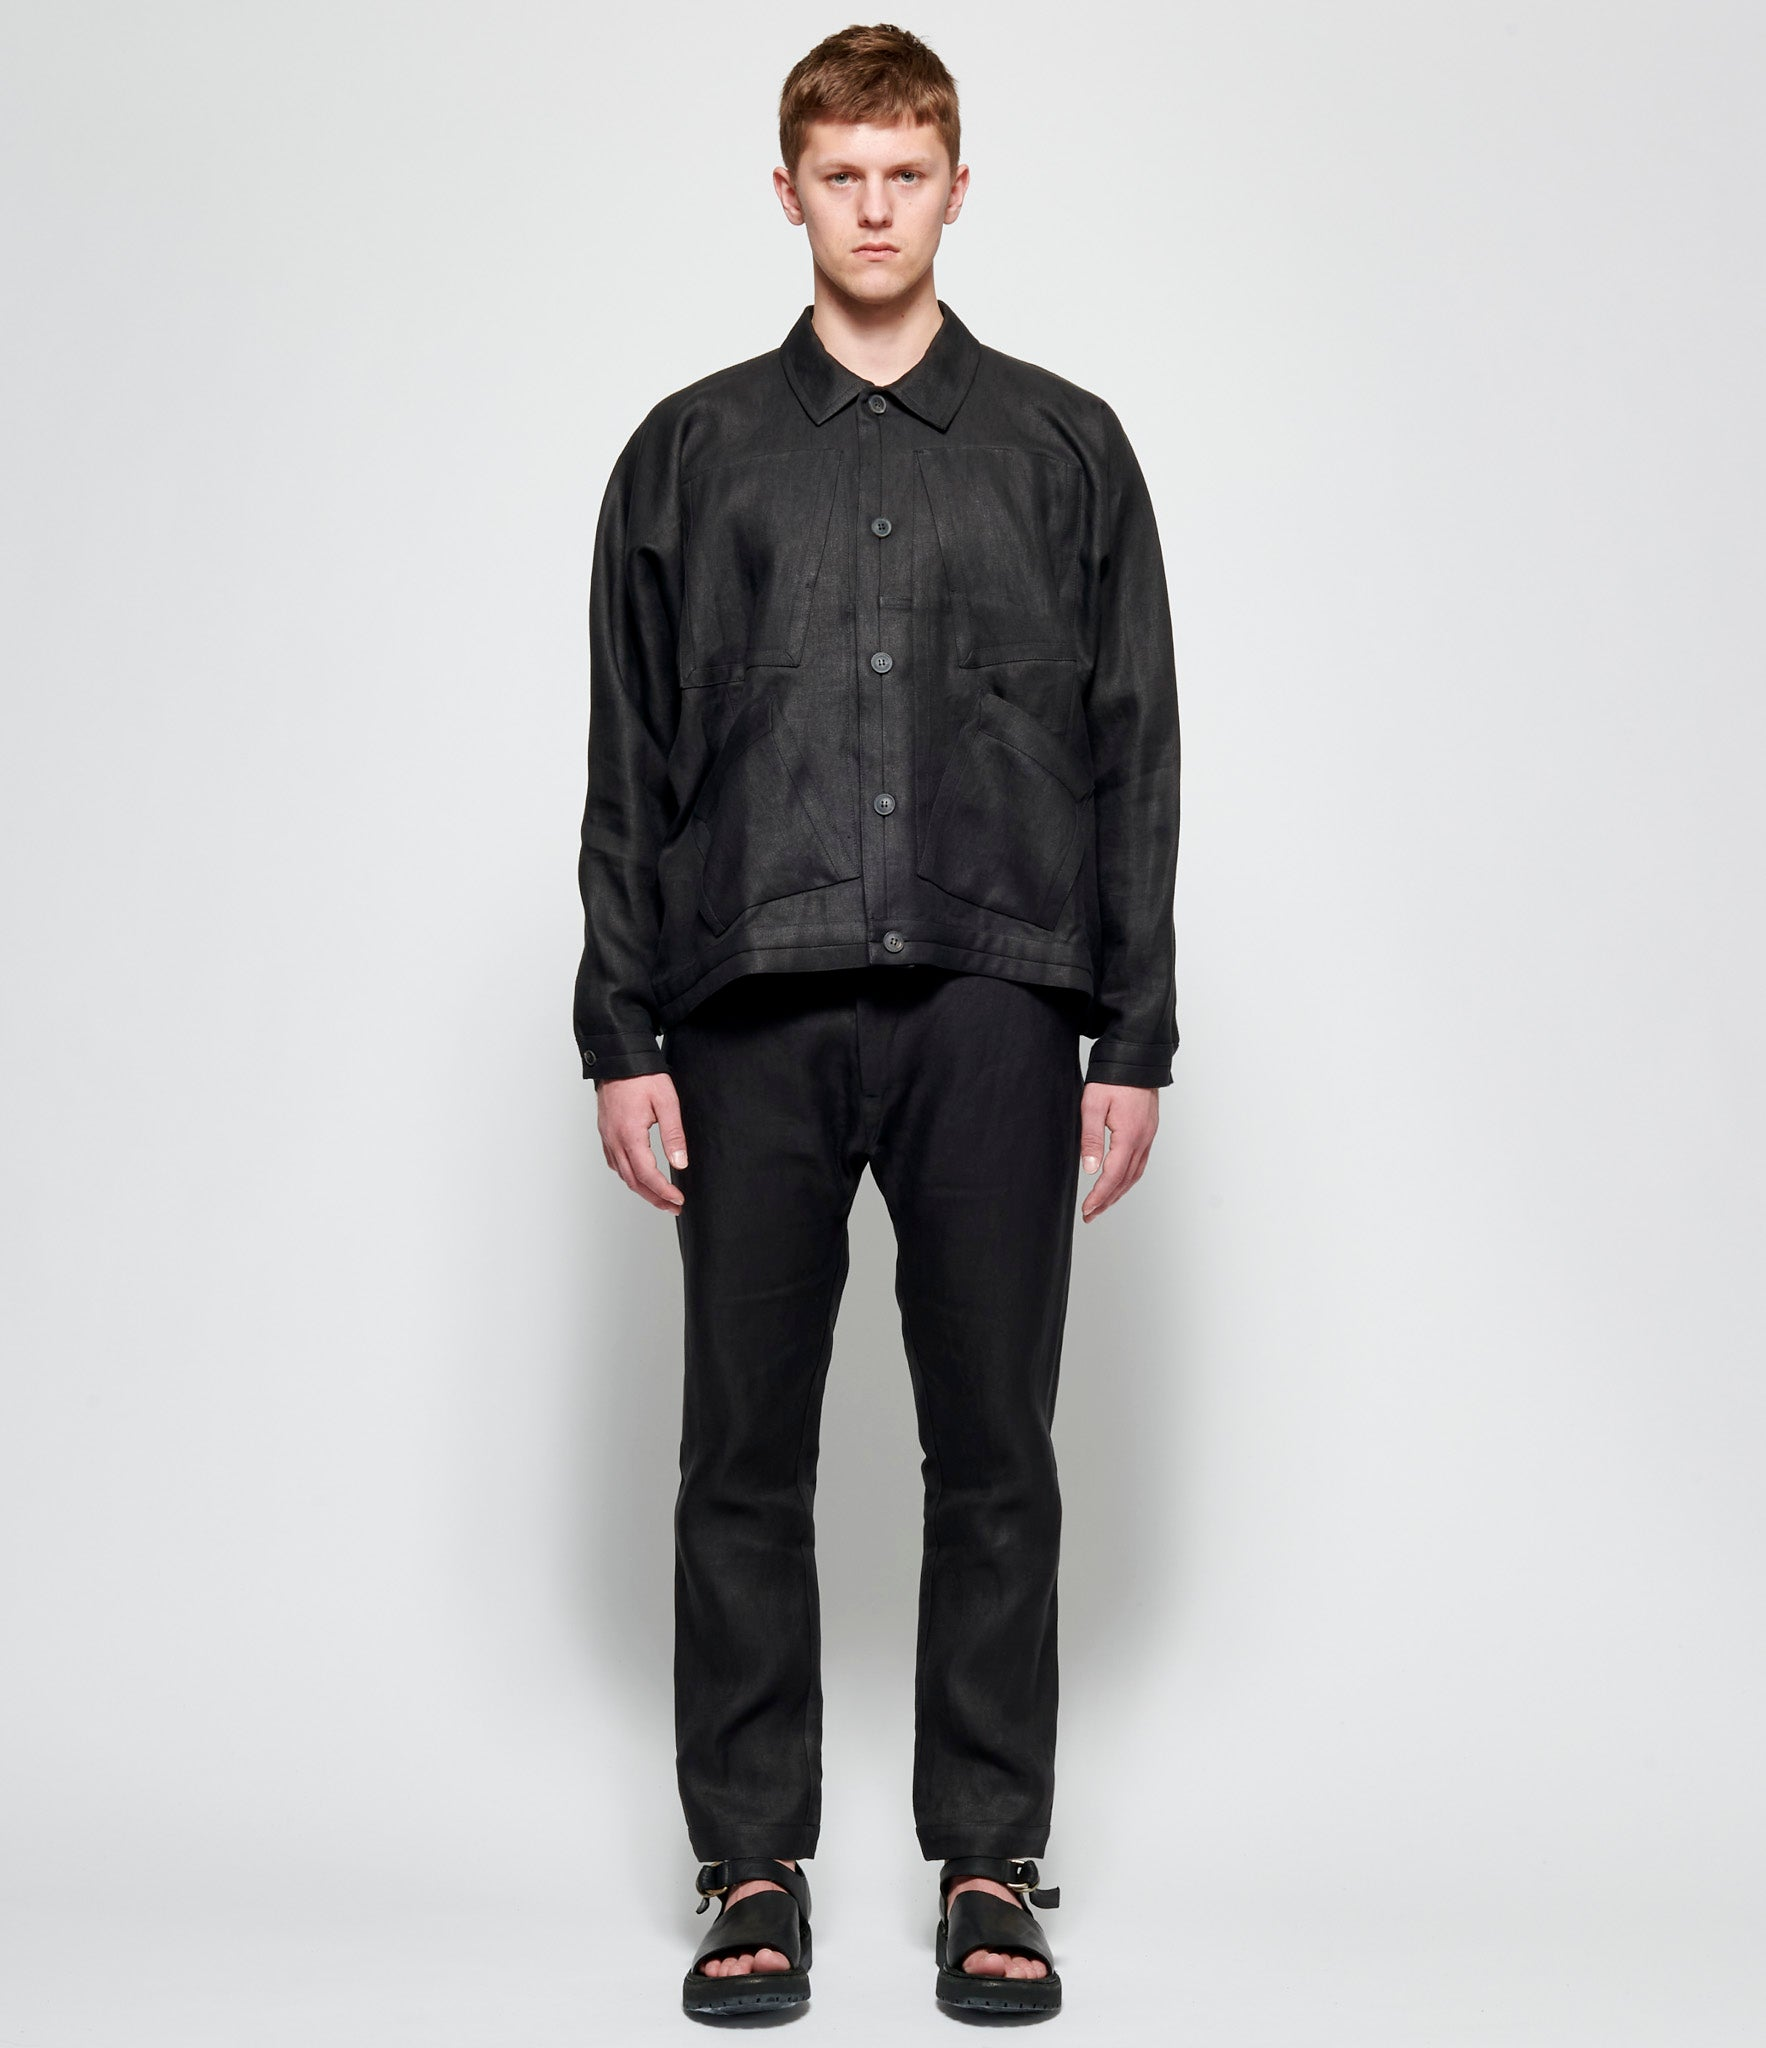 Jan Jan Van Essche Black Hemp Twill Trucker Jacket